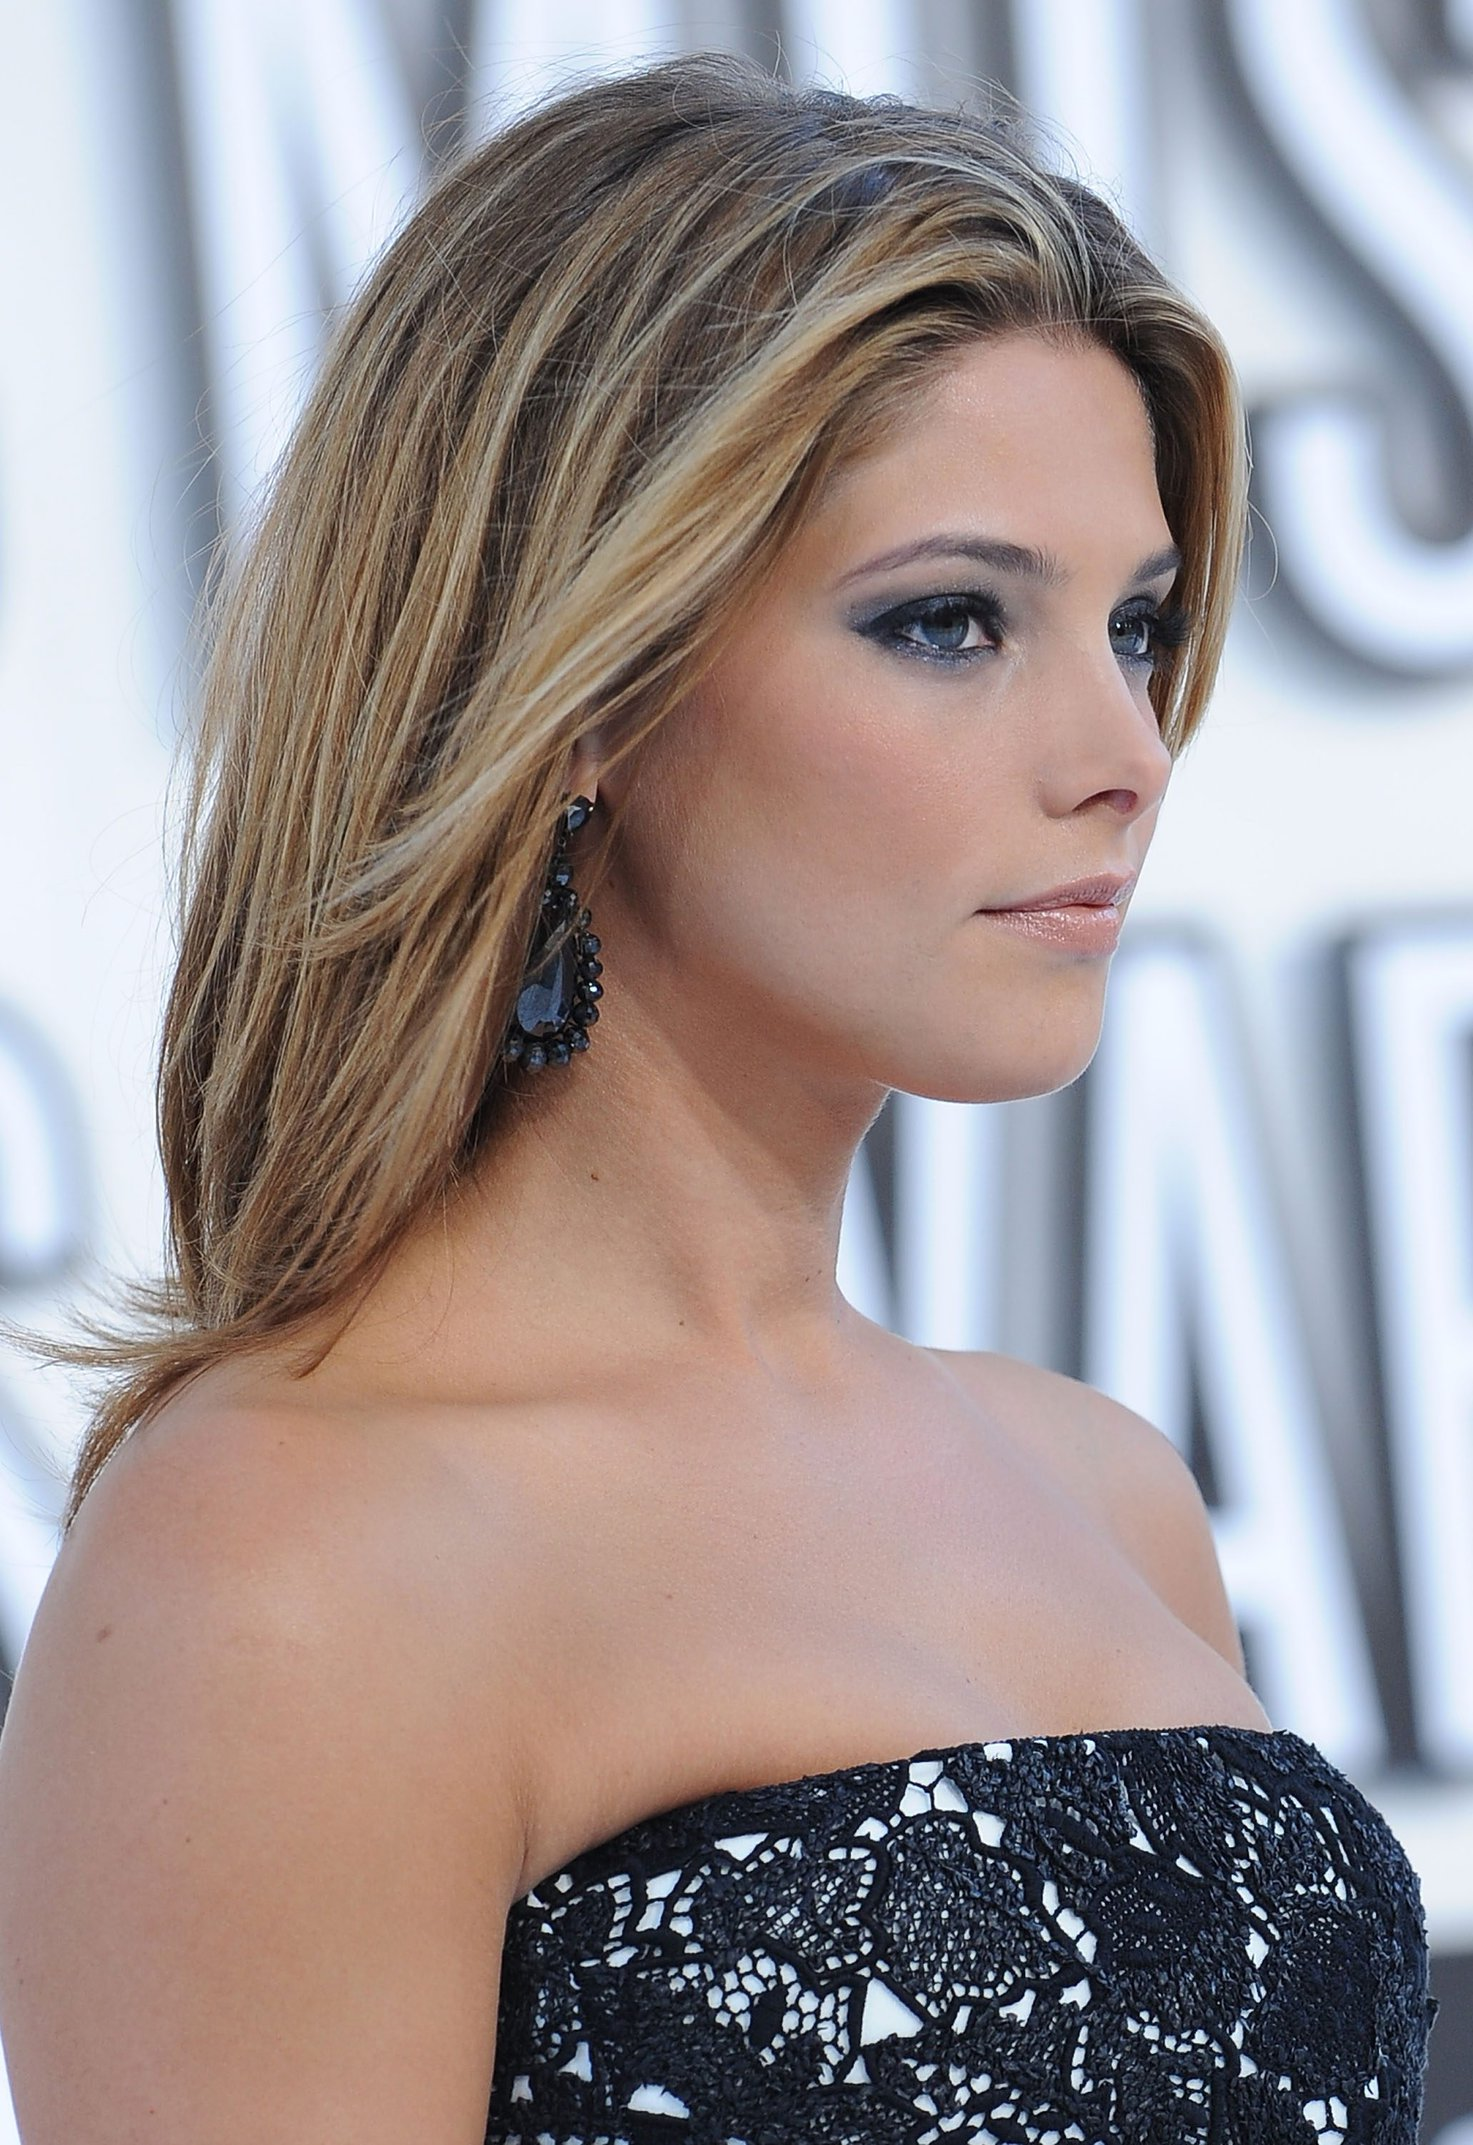 Ashley Greene Pictures He was waiting for his drinks. celebrity rater